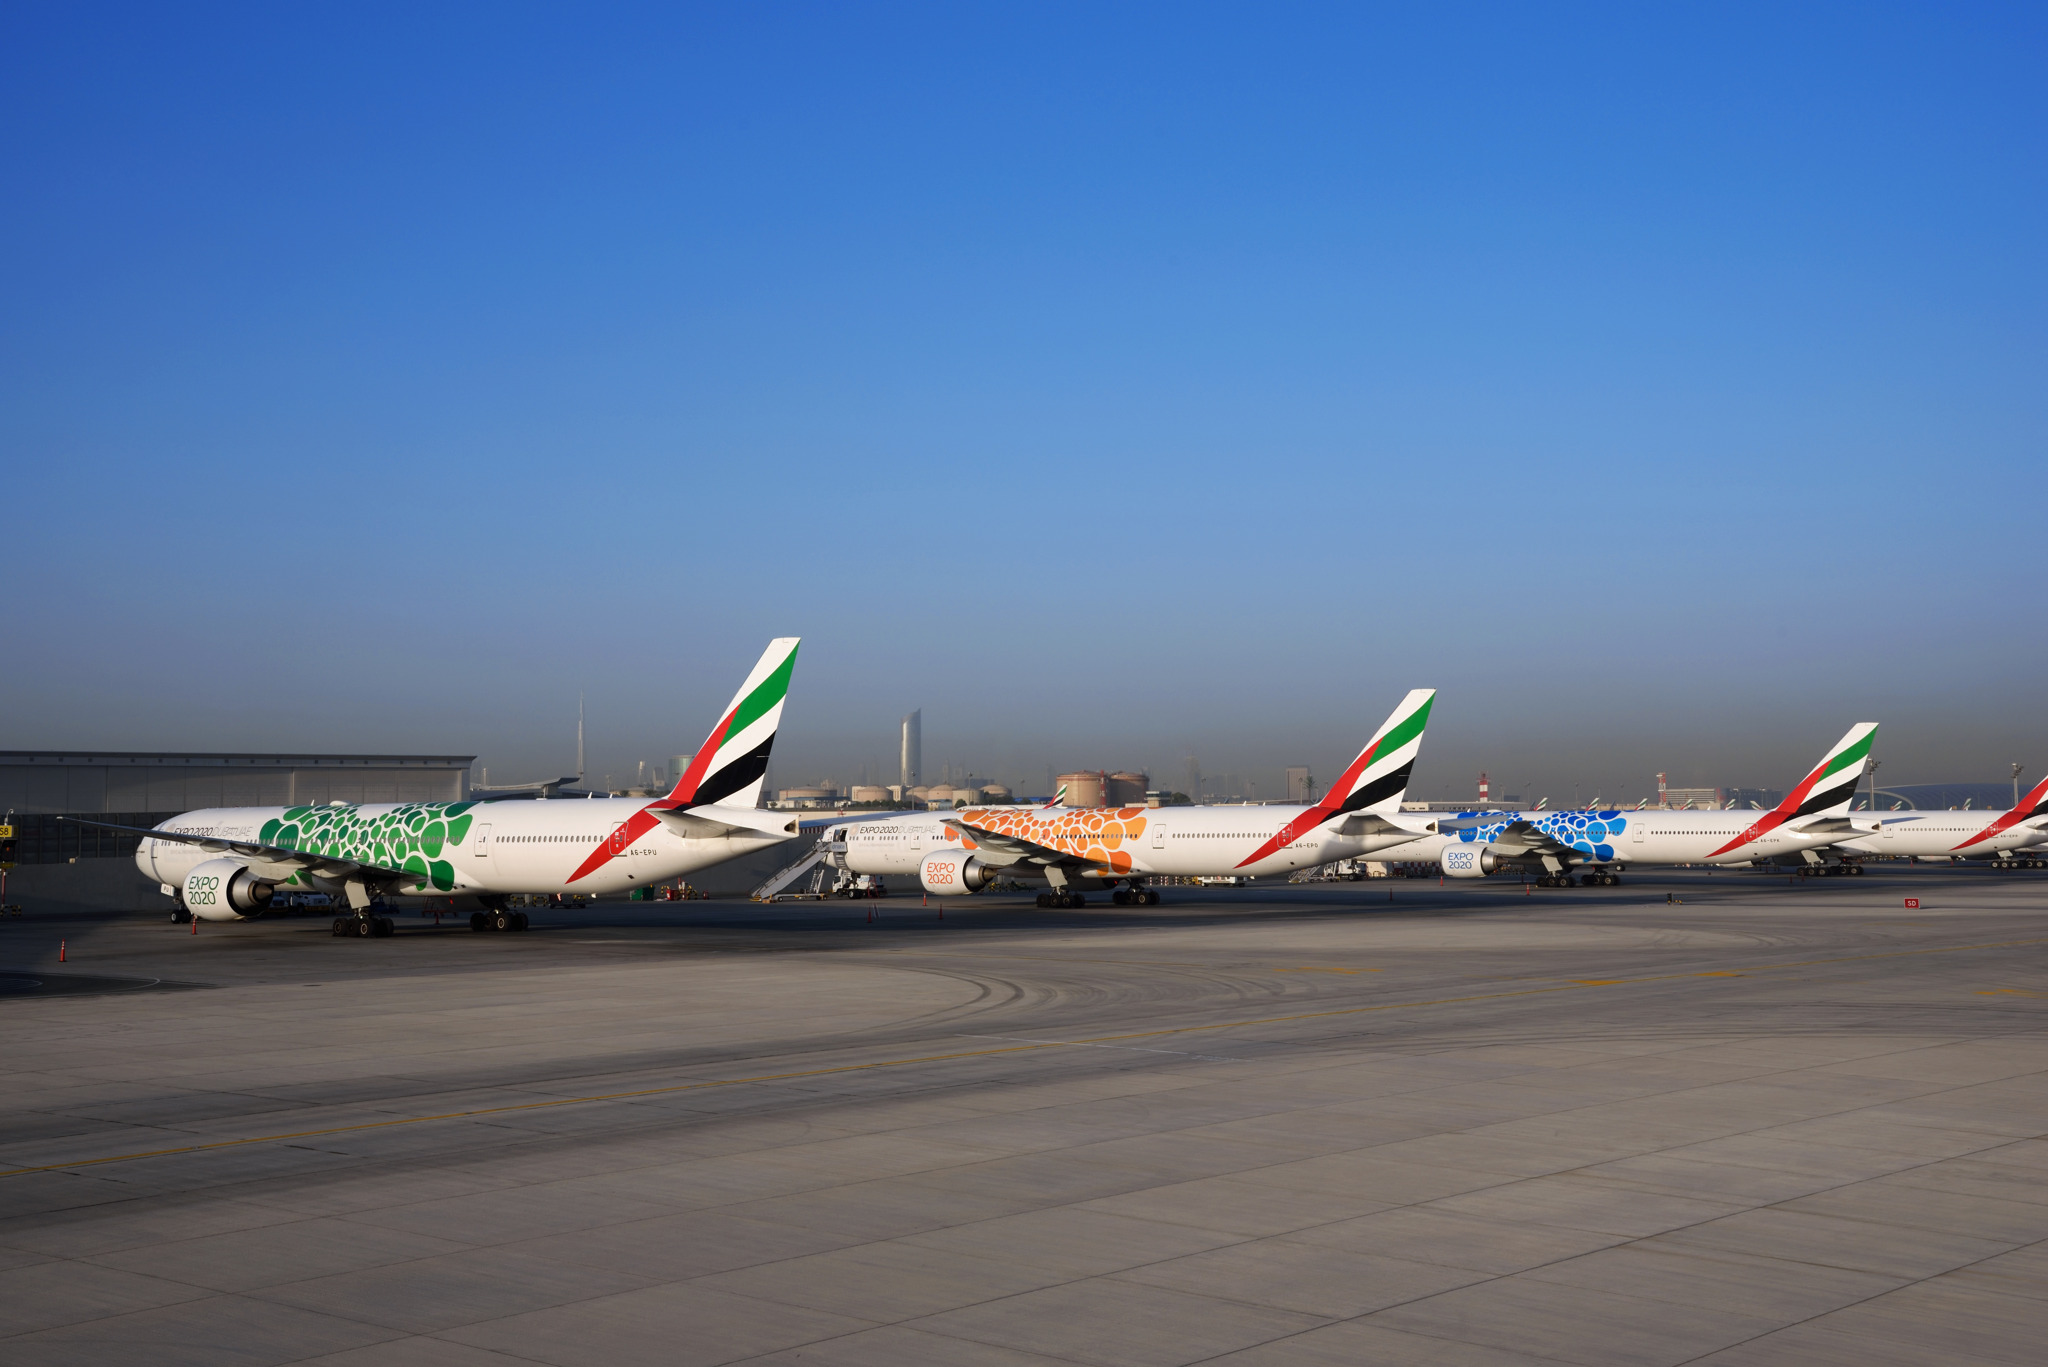 Emirates completes installation of Expo 2020 Dubai livery on